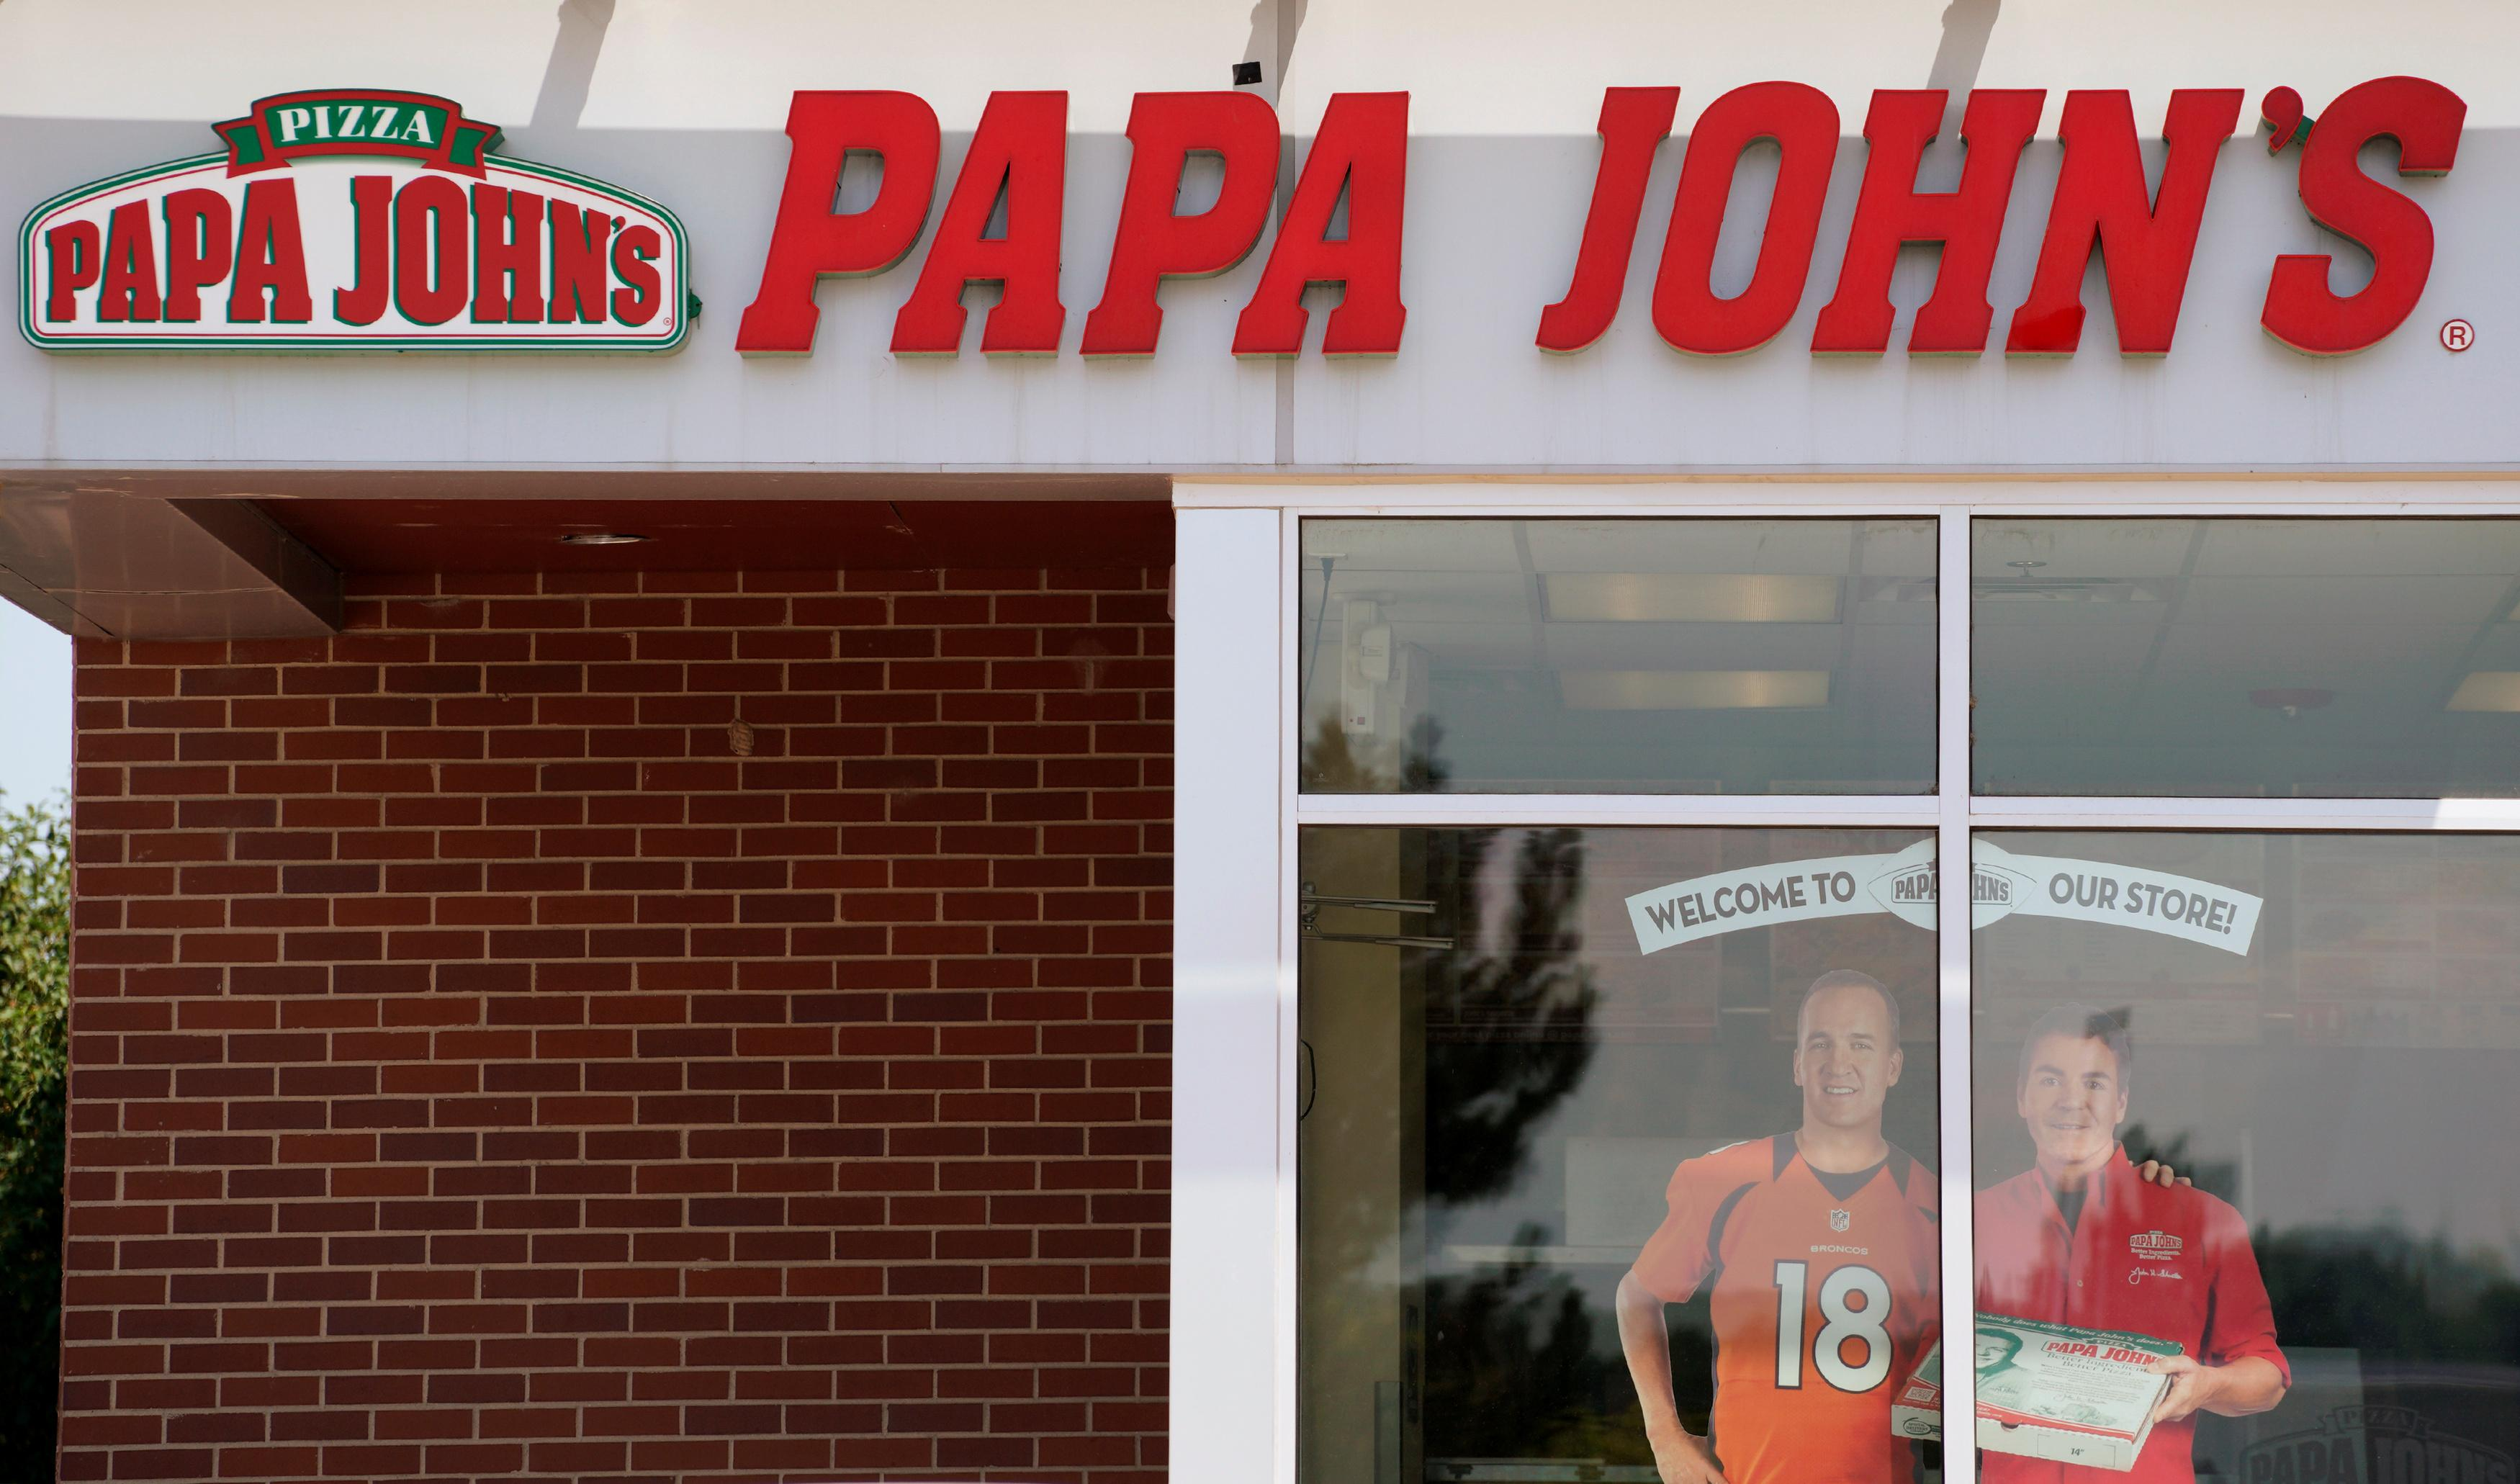 The Papa John's store in Westminster, Colorado, U.S. August 1, 2017.  Rick Wilking